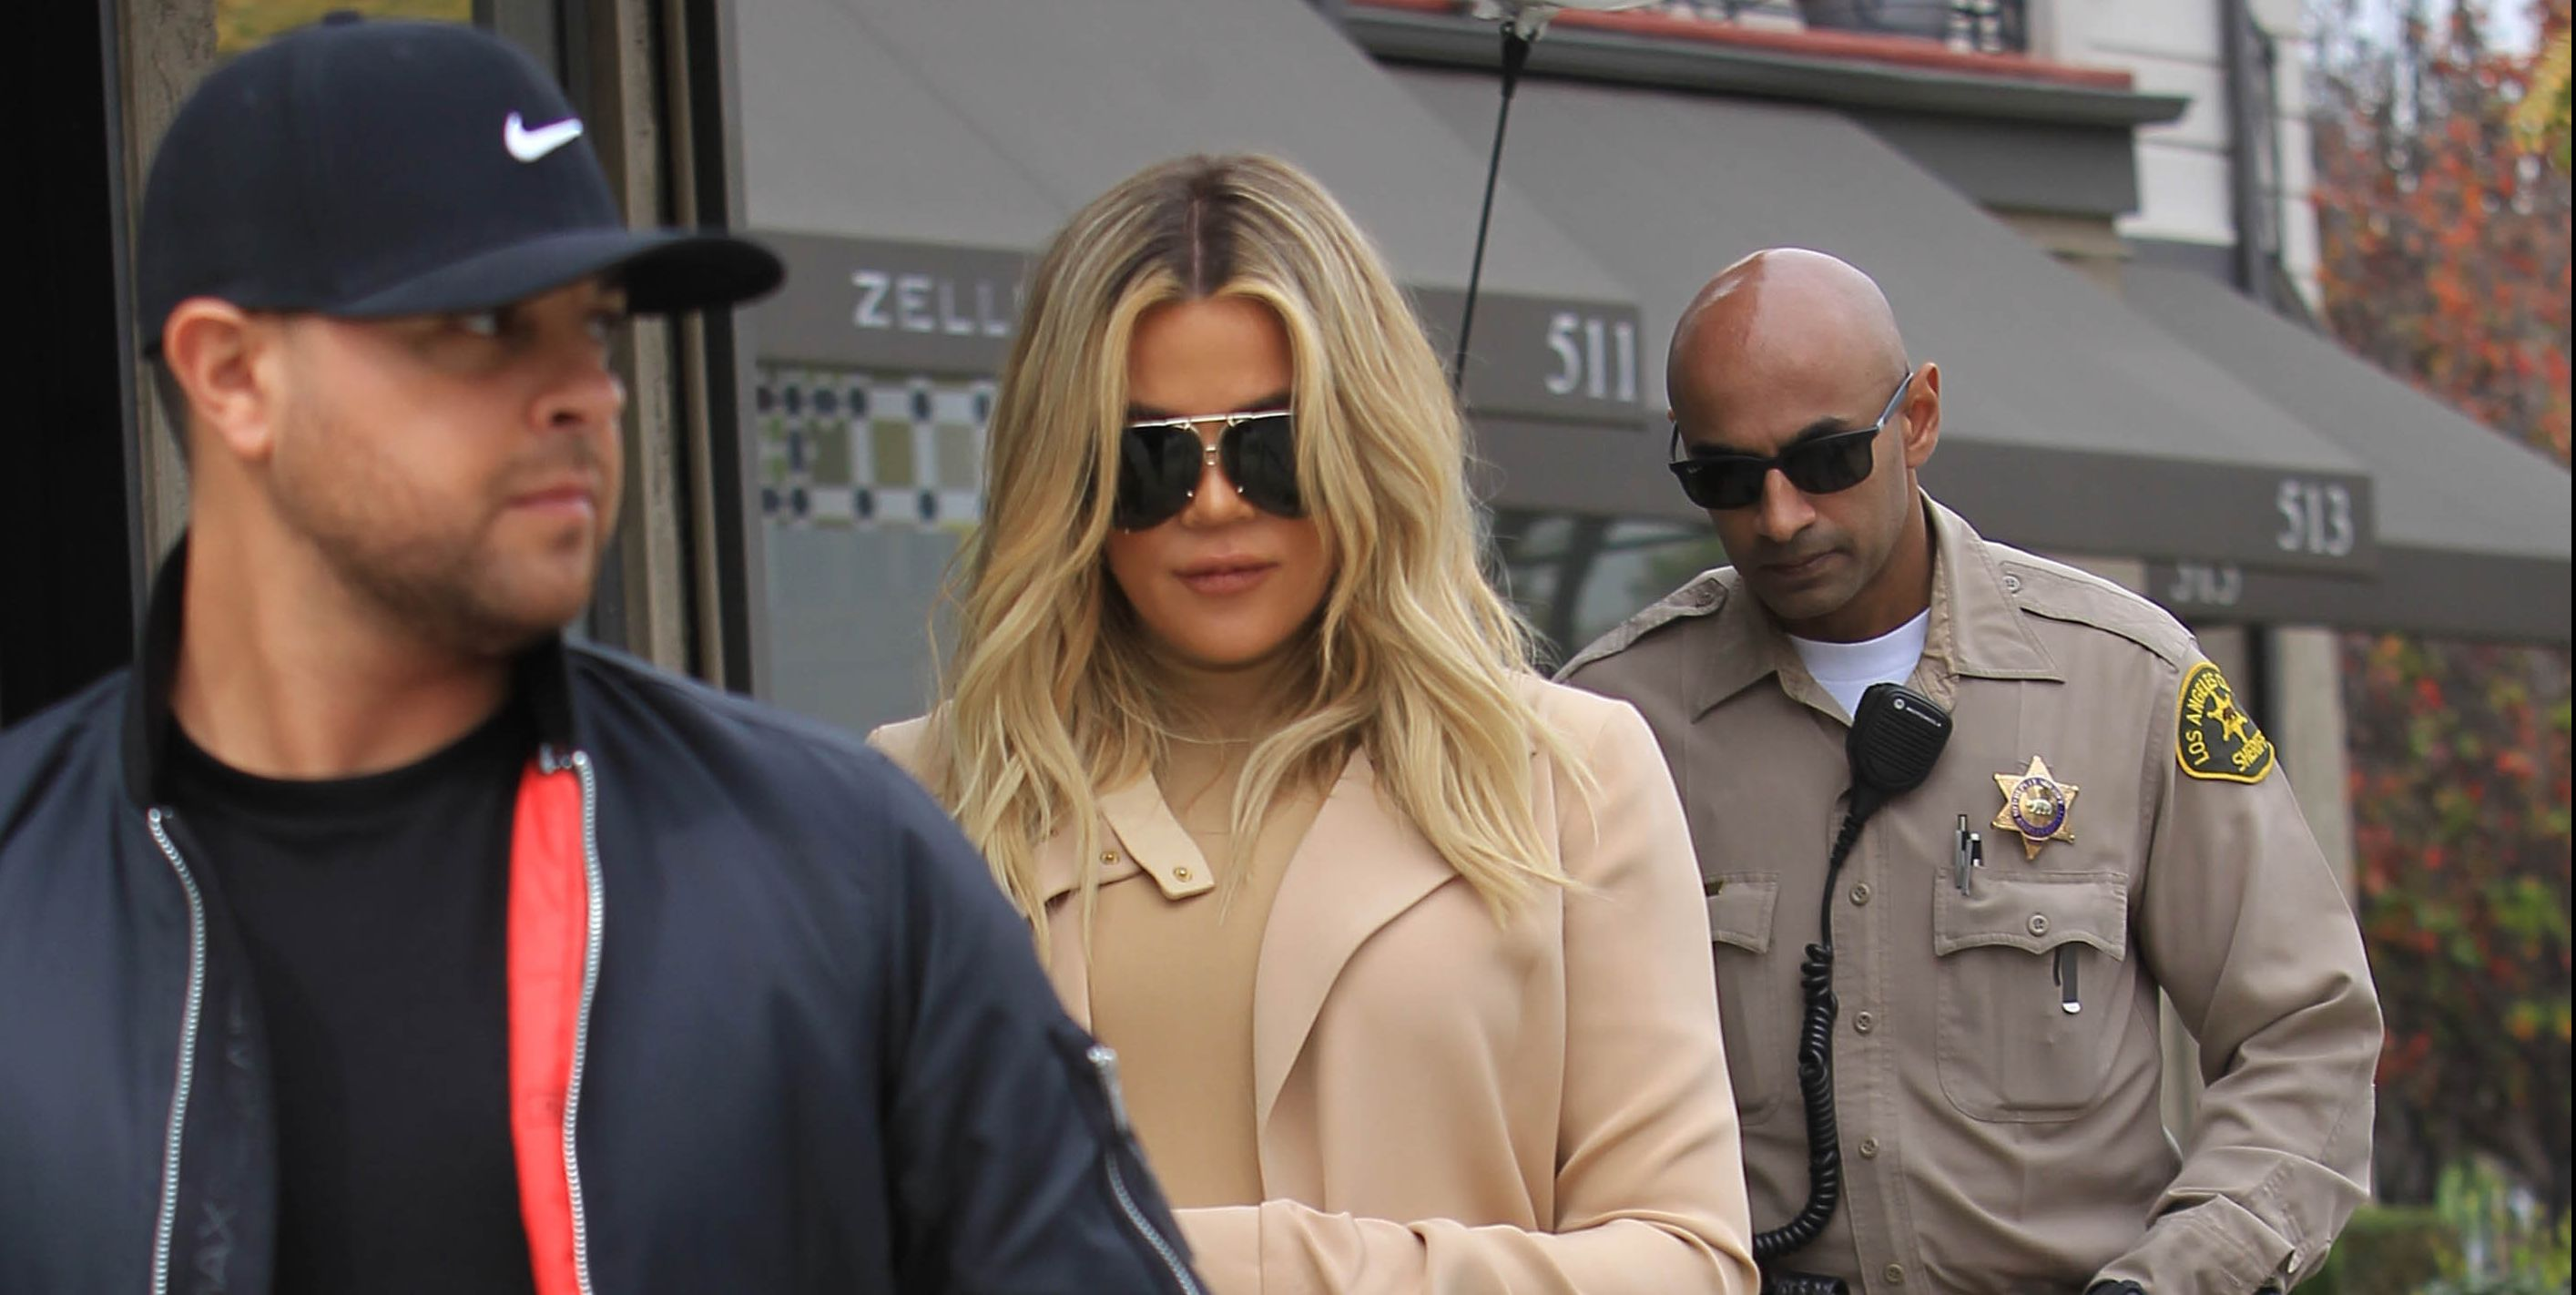 Khloe Kardashian just attended Tristan Thompson's basketball game